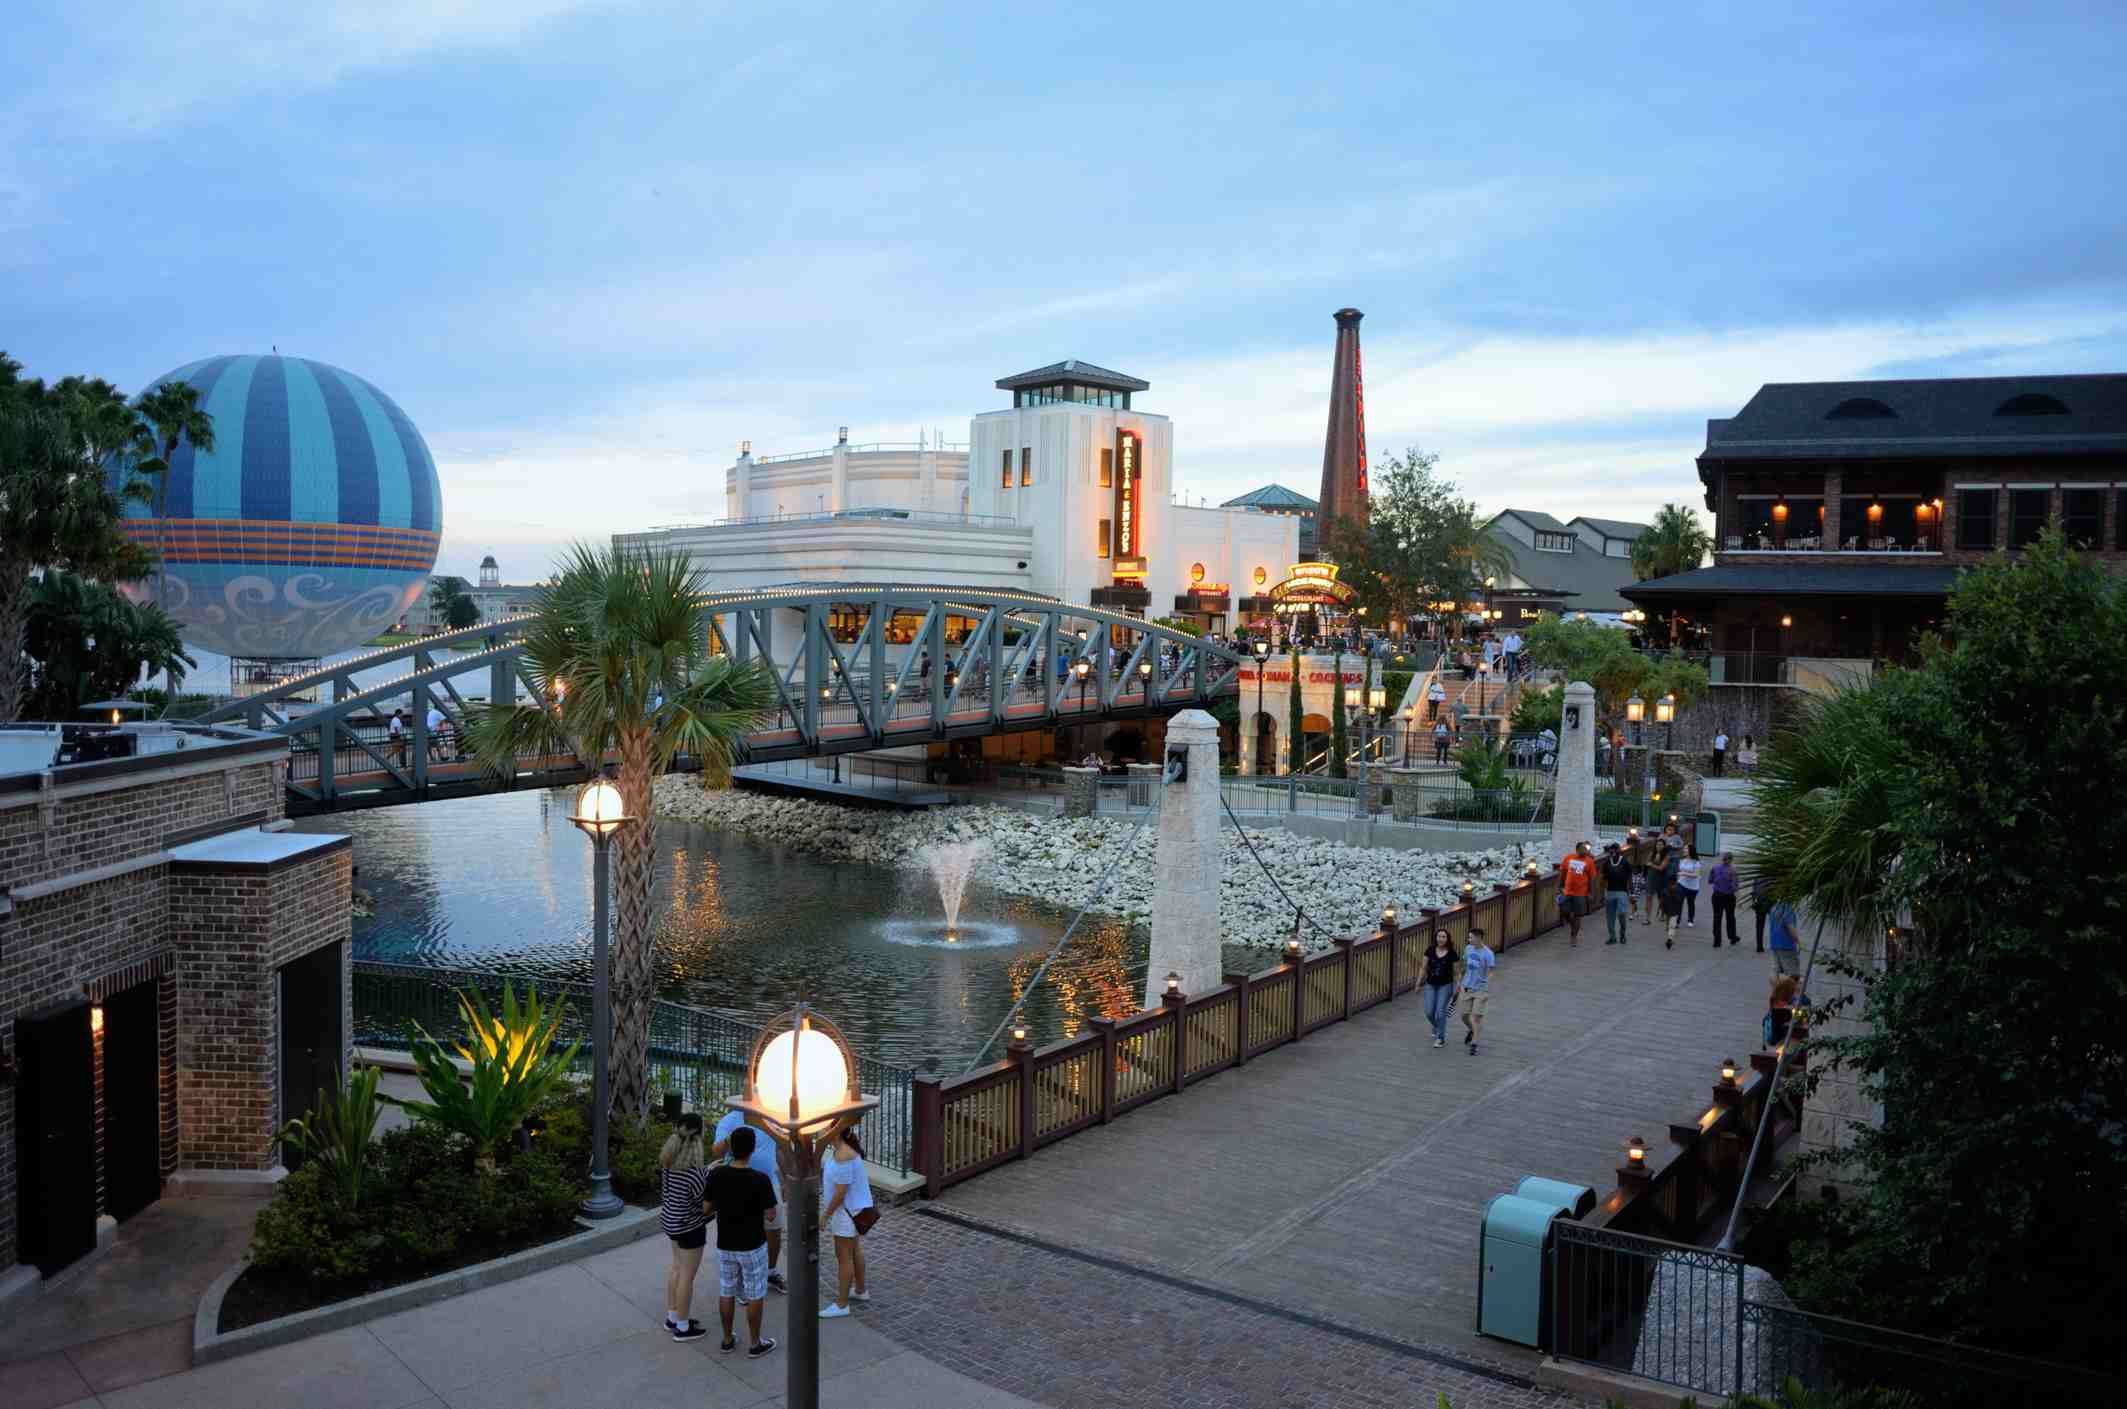 People enjoying the Disney Springs shopping and restaurant area